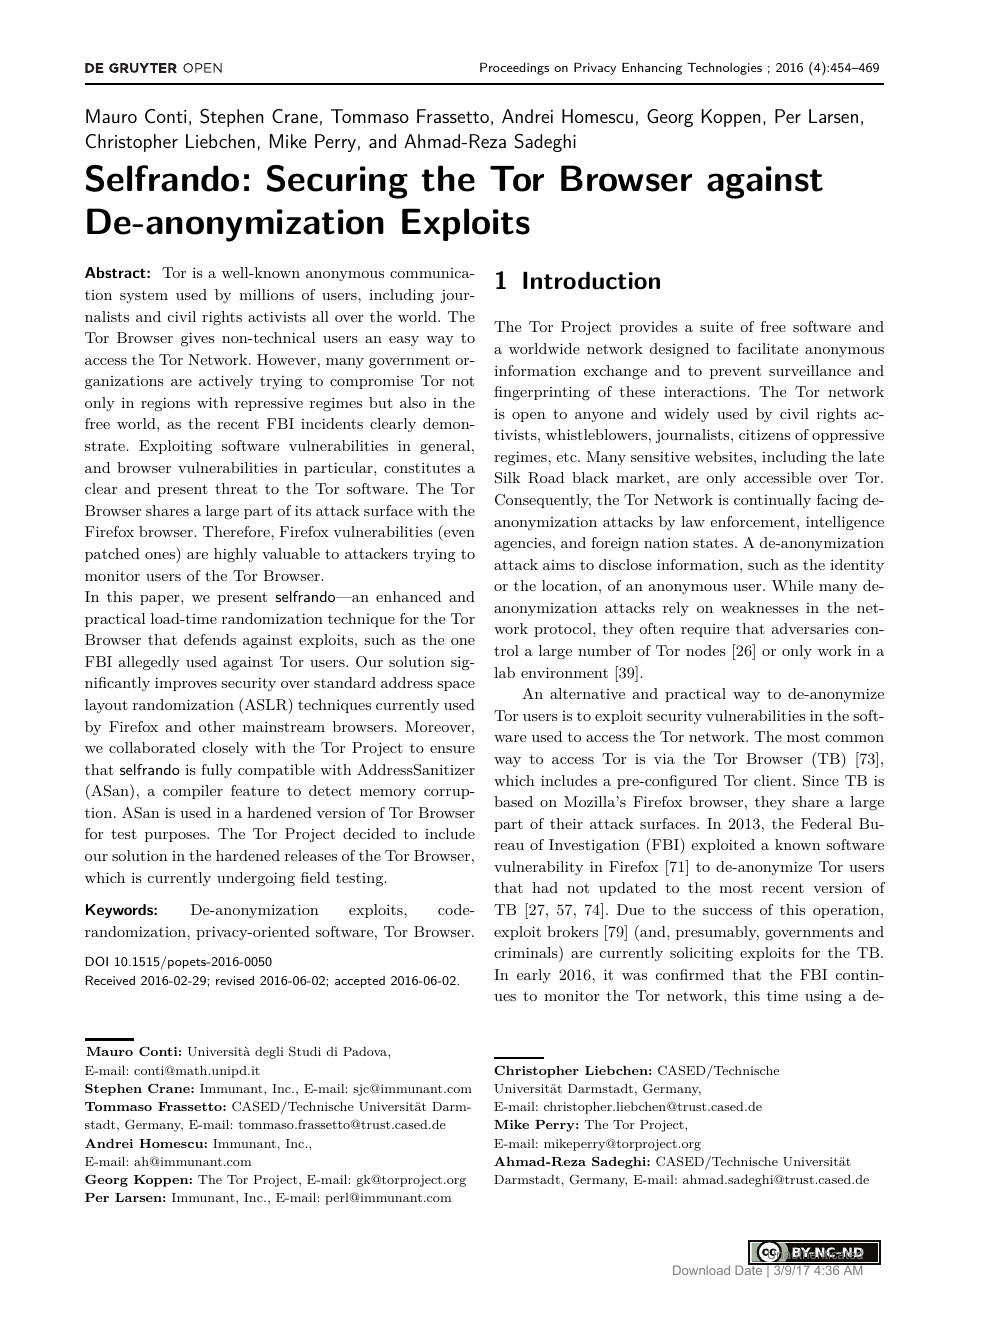 Selfrando: Securing the Tor Browser against De-anonymization